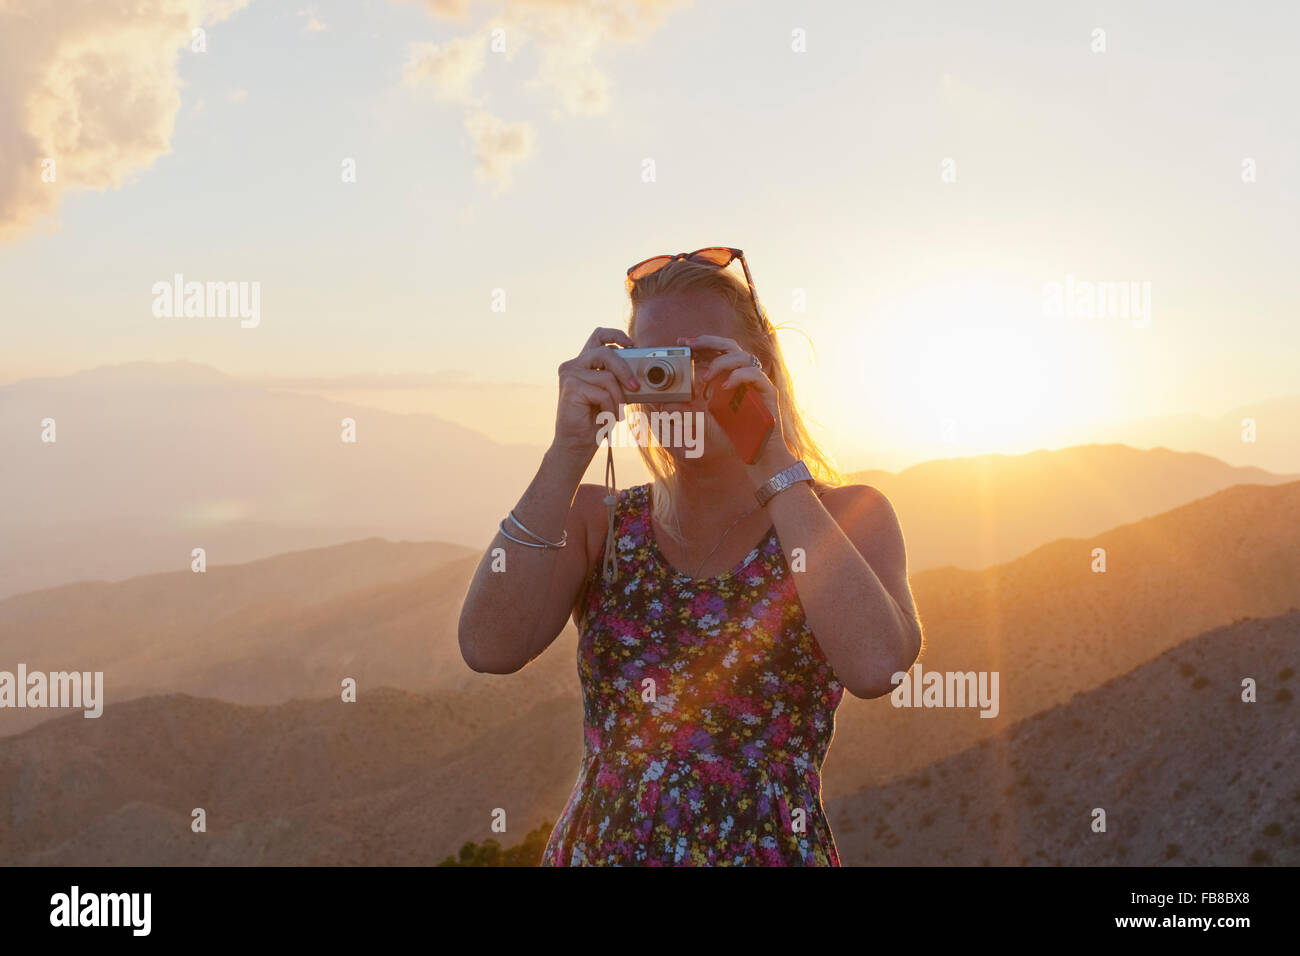 USA, California, Joshua Tree National Park, Female tourist photographing landscape at sunset - Stock Image